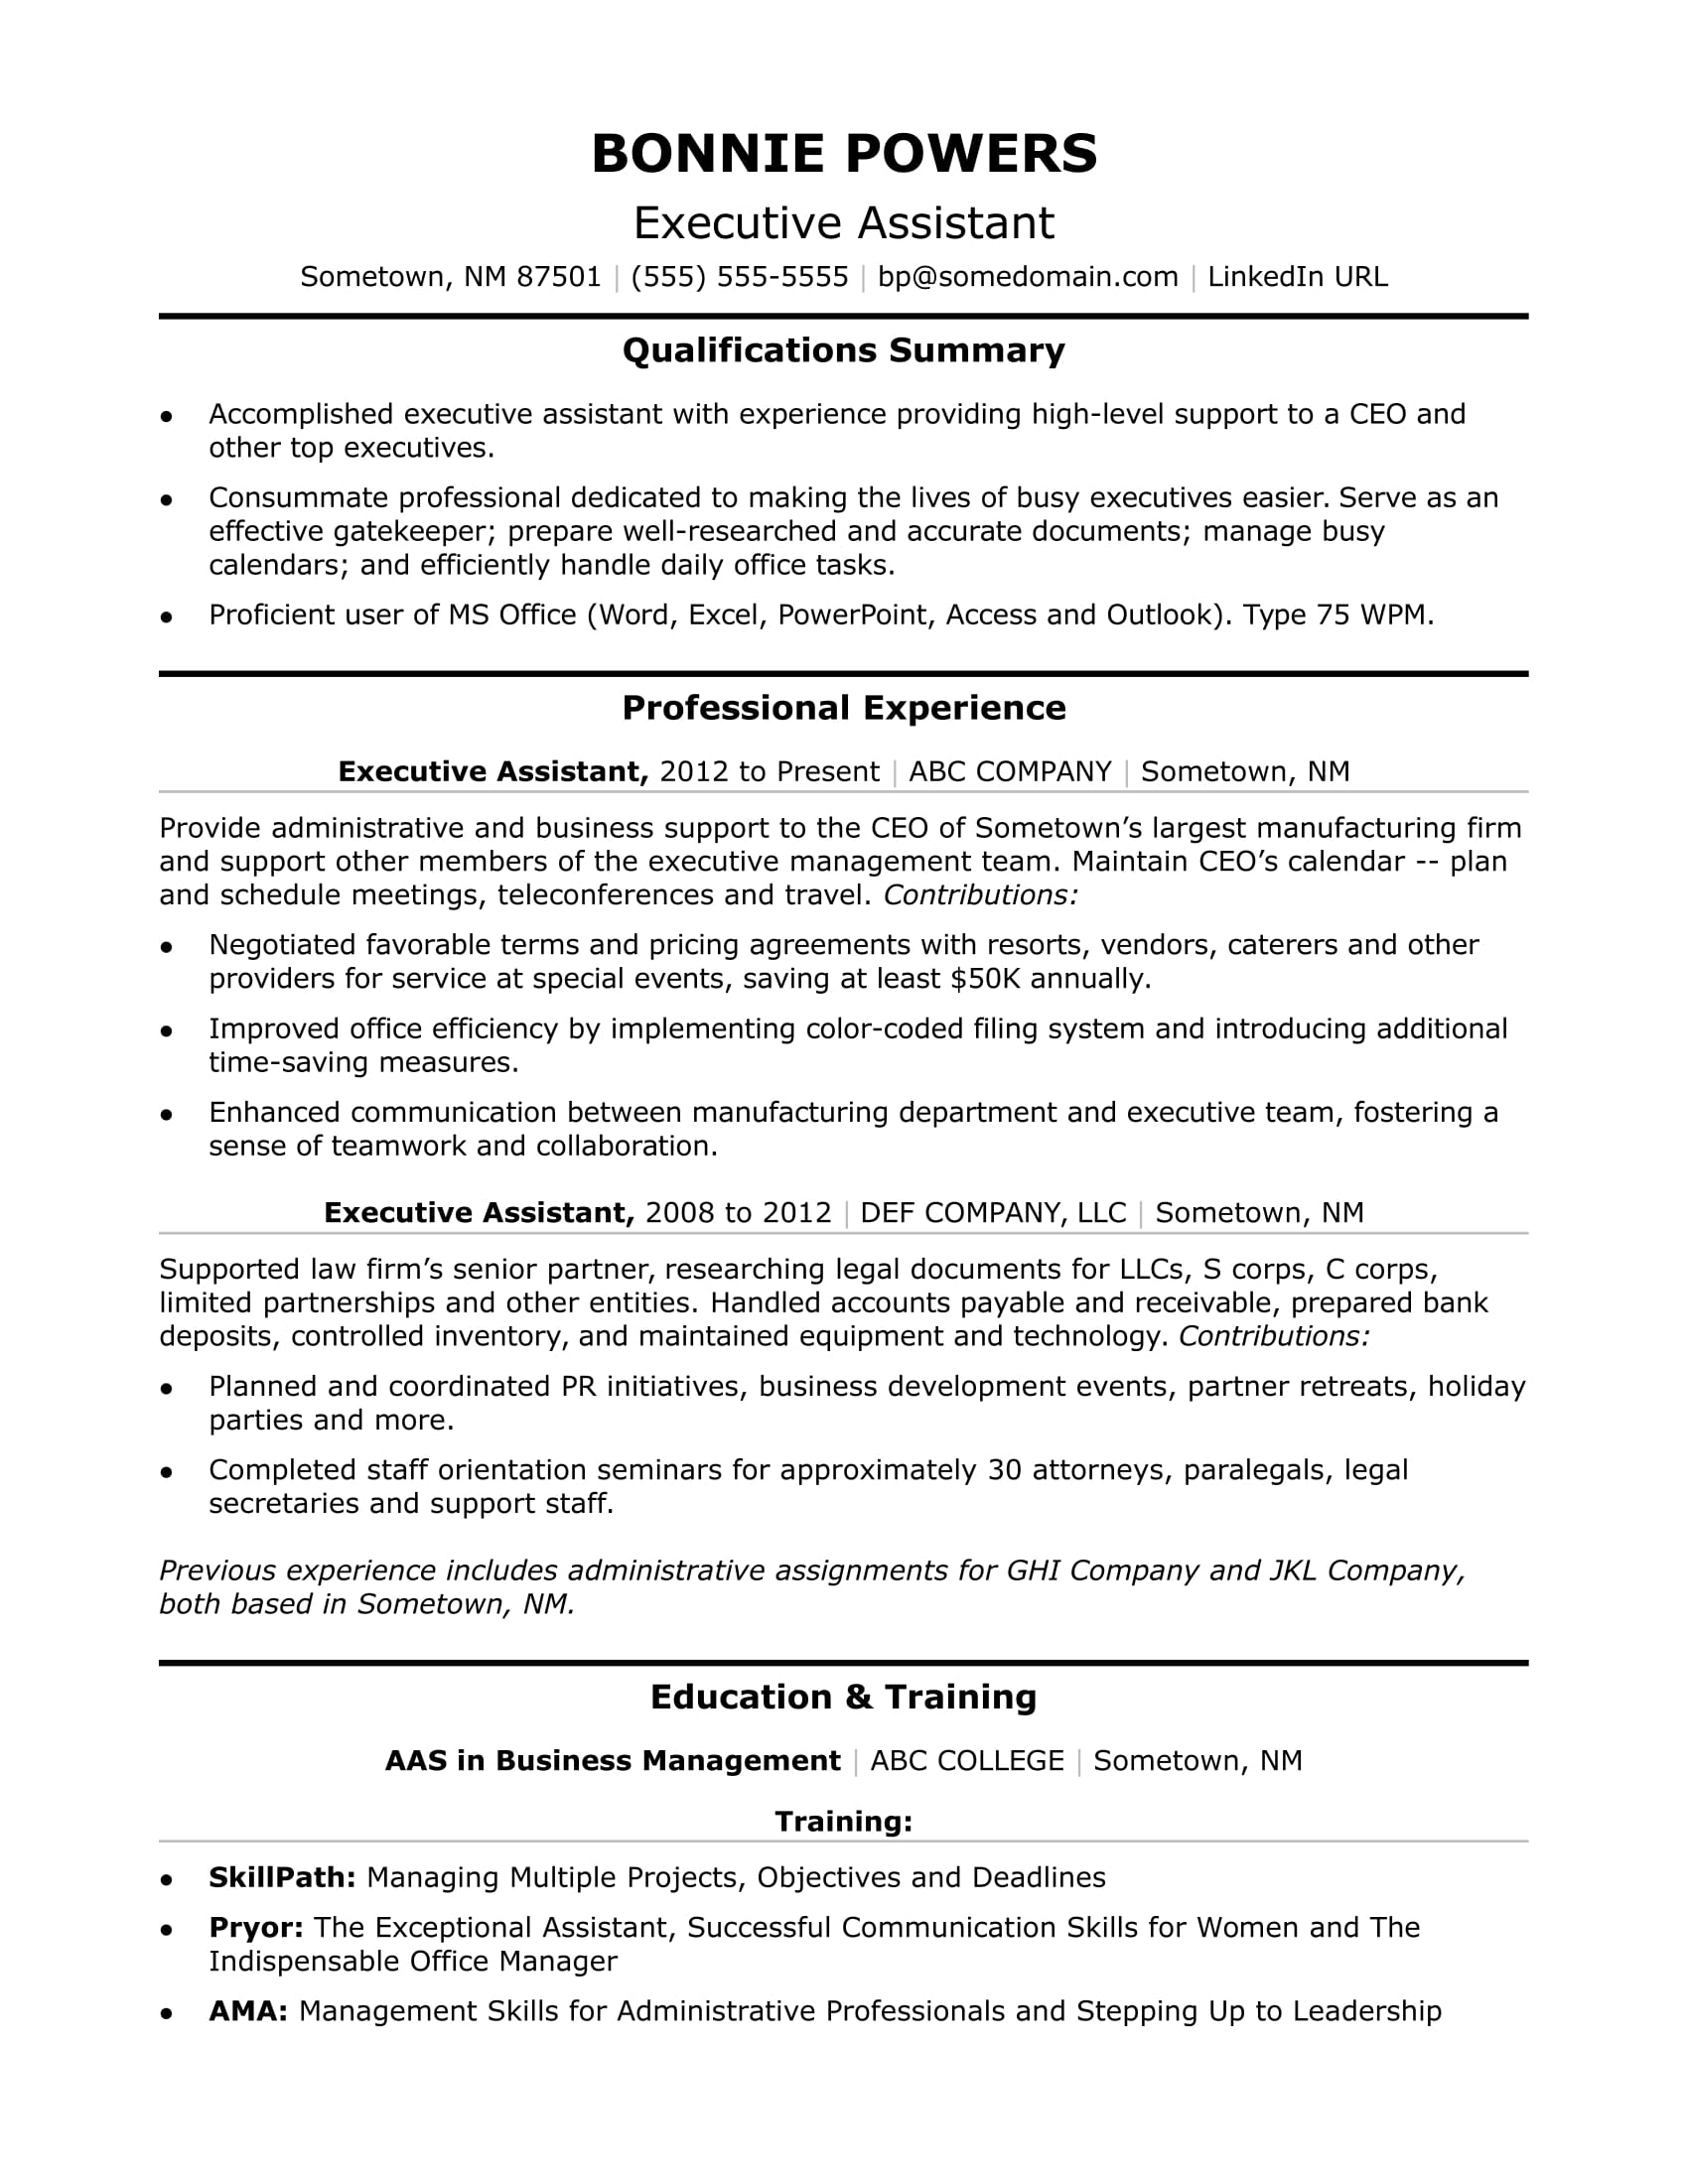 executive administrative assistant resume sample monster skills and abilities for client Resume Skills And Abilities For Administrative Assistant Resume